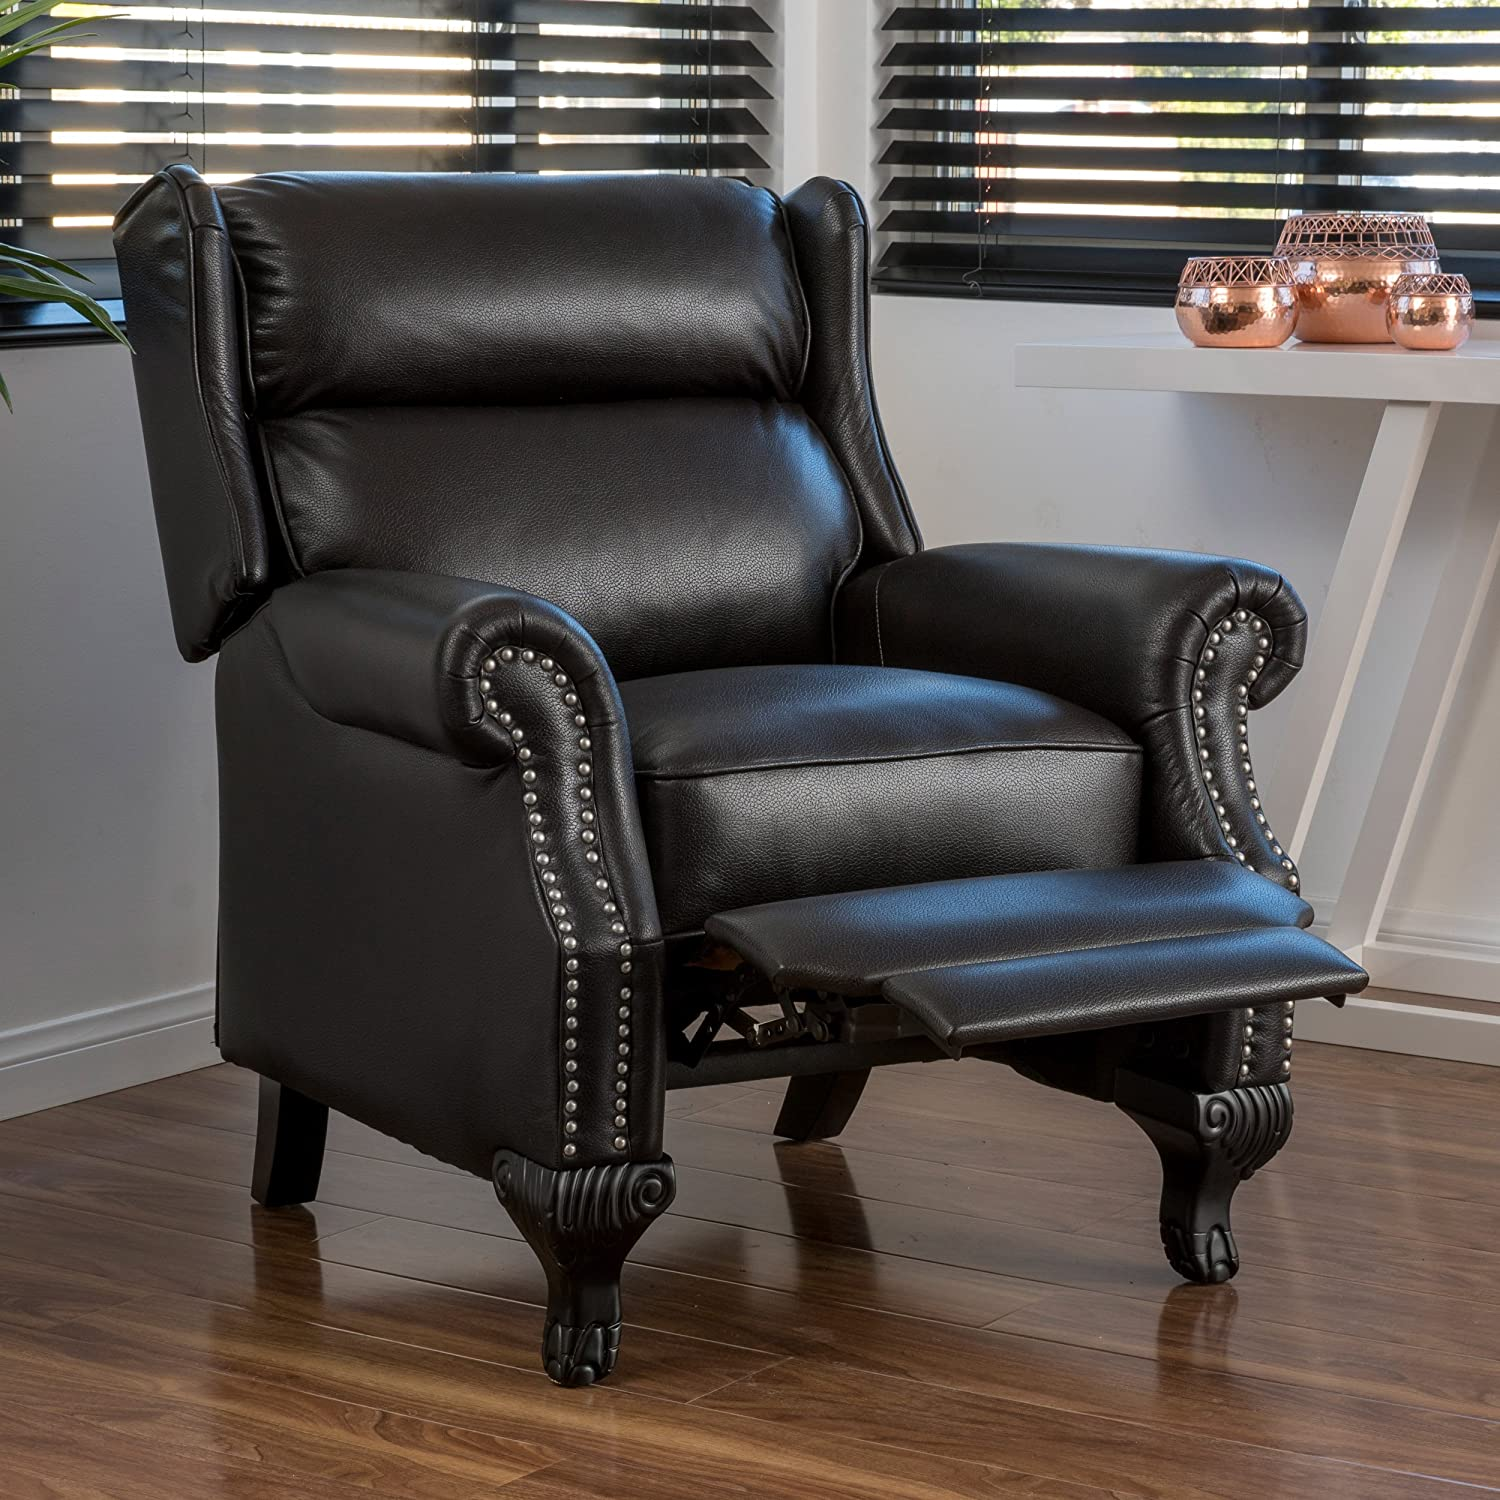 Amazon Curtis Black Leather Recliner Club Chair with Nailhead